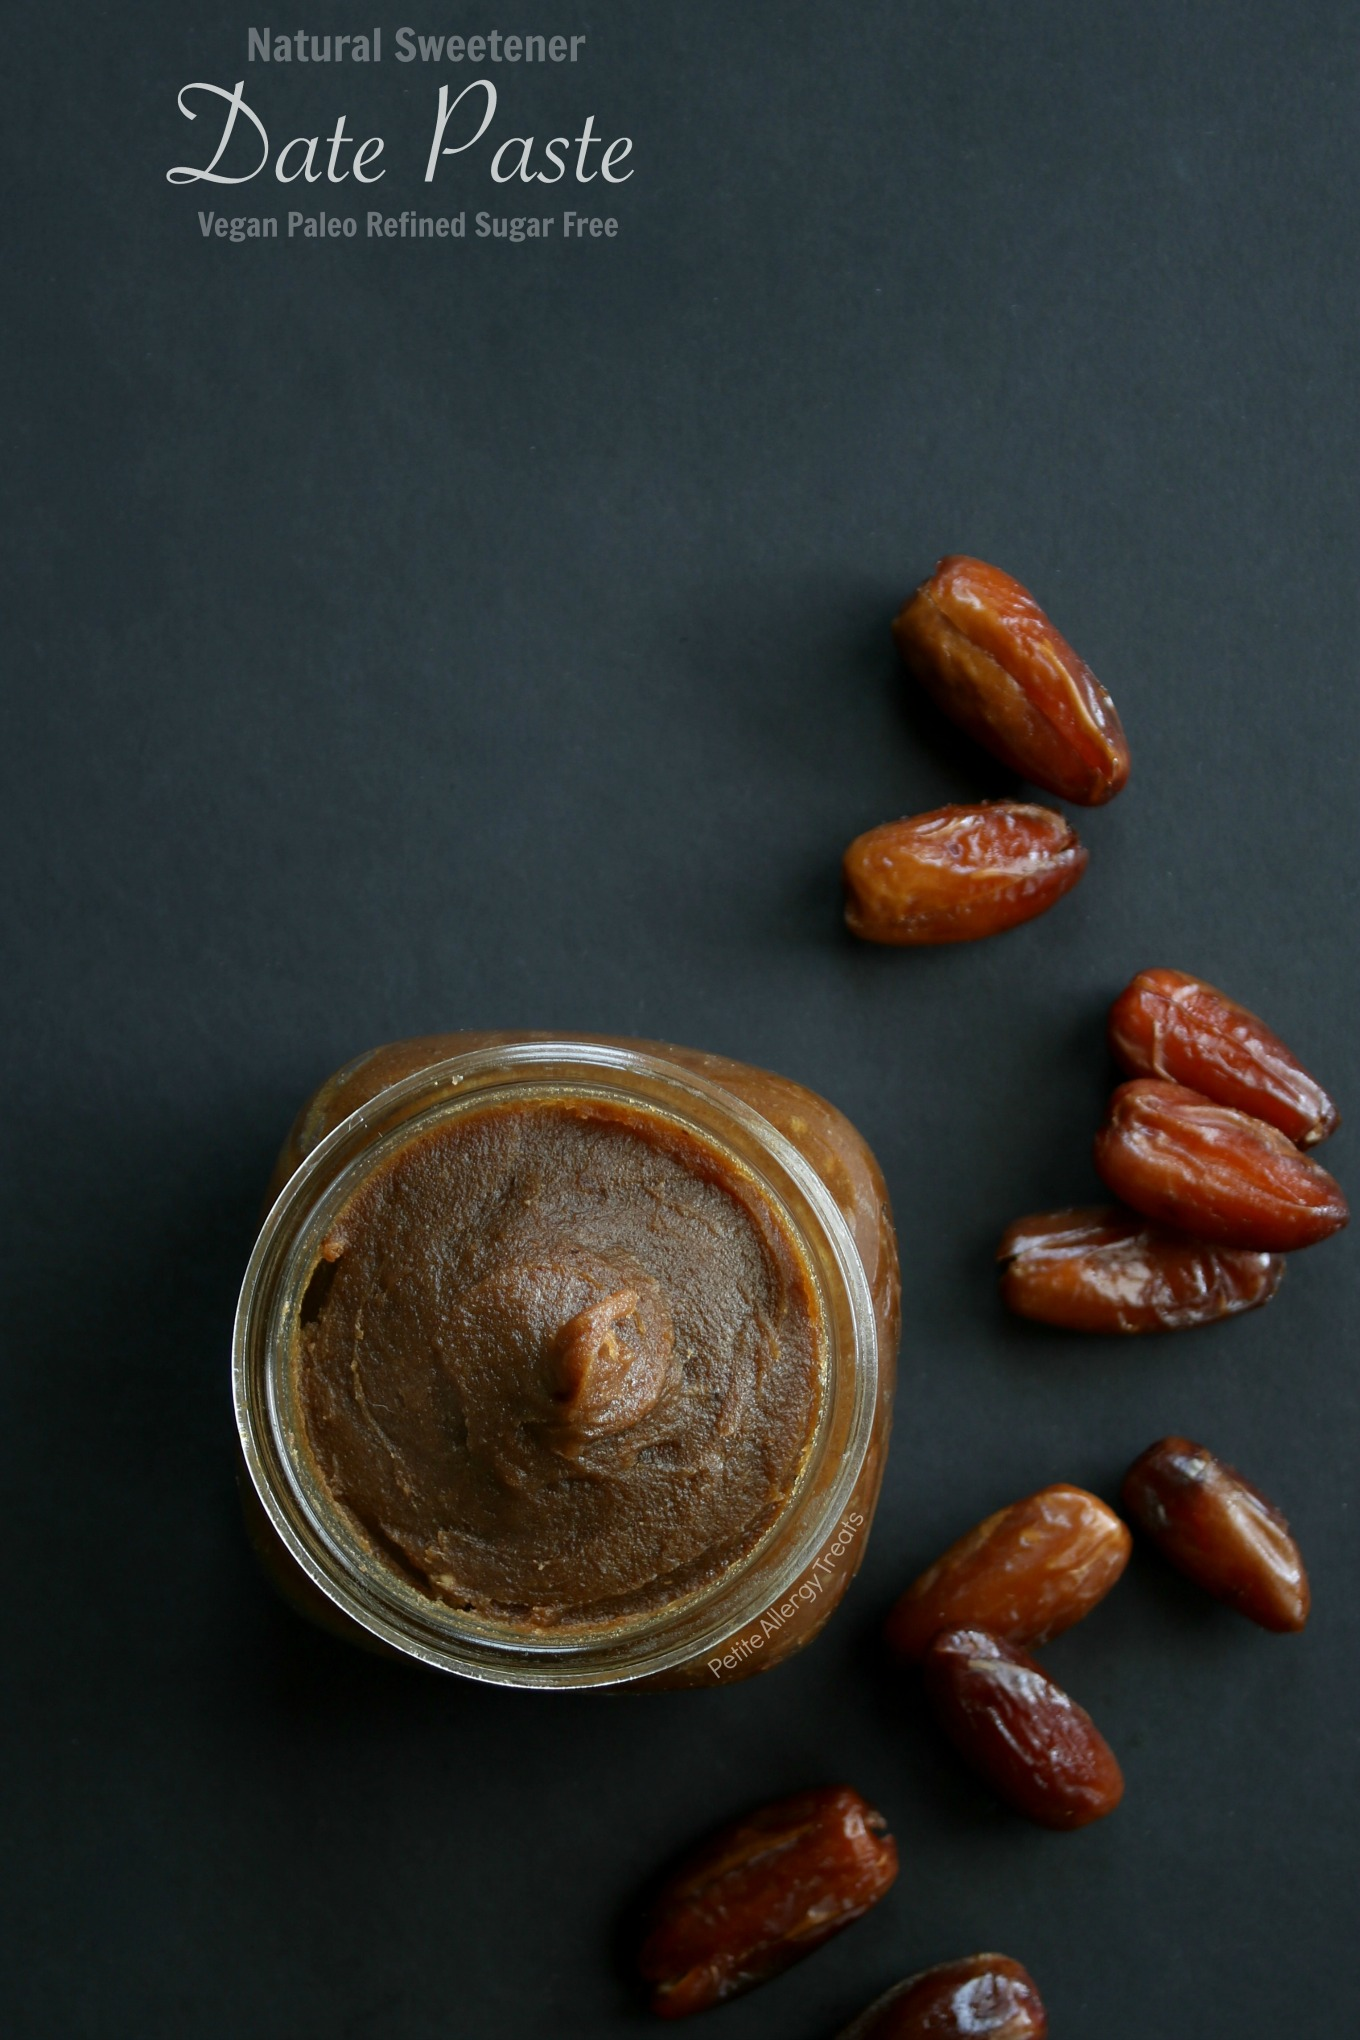 Paleo Date Paste Sweetener- Refined sugar free sweetener- gluten free vegan very Food Allergy Friendly!